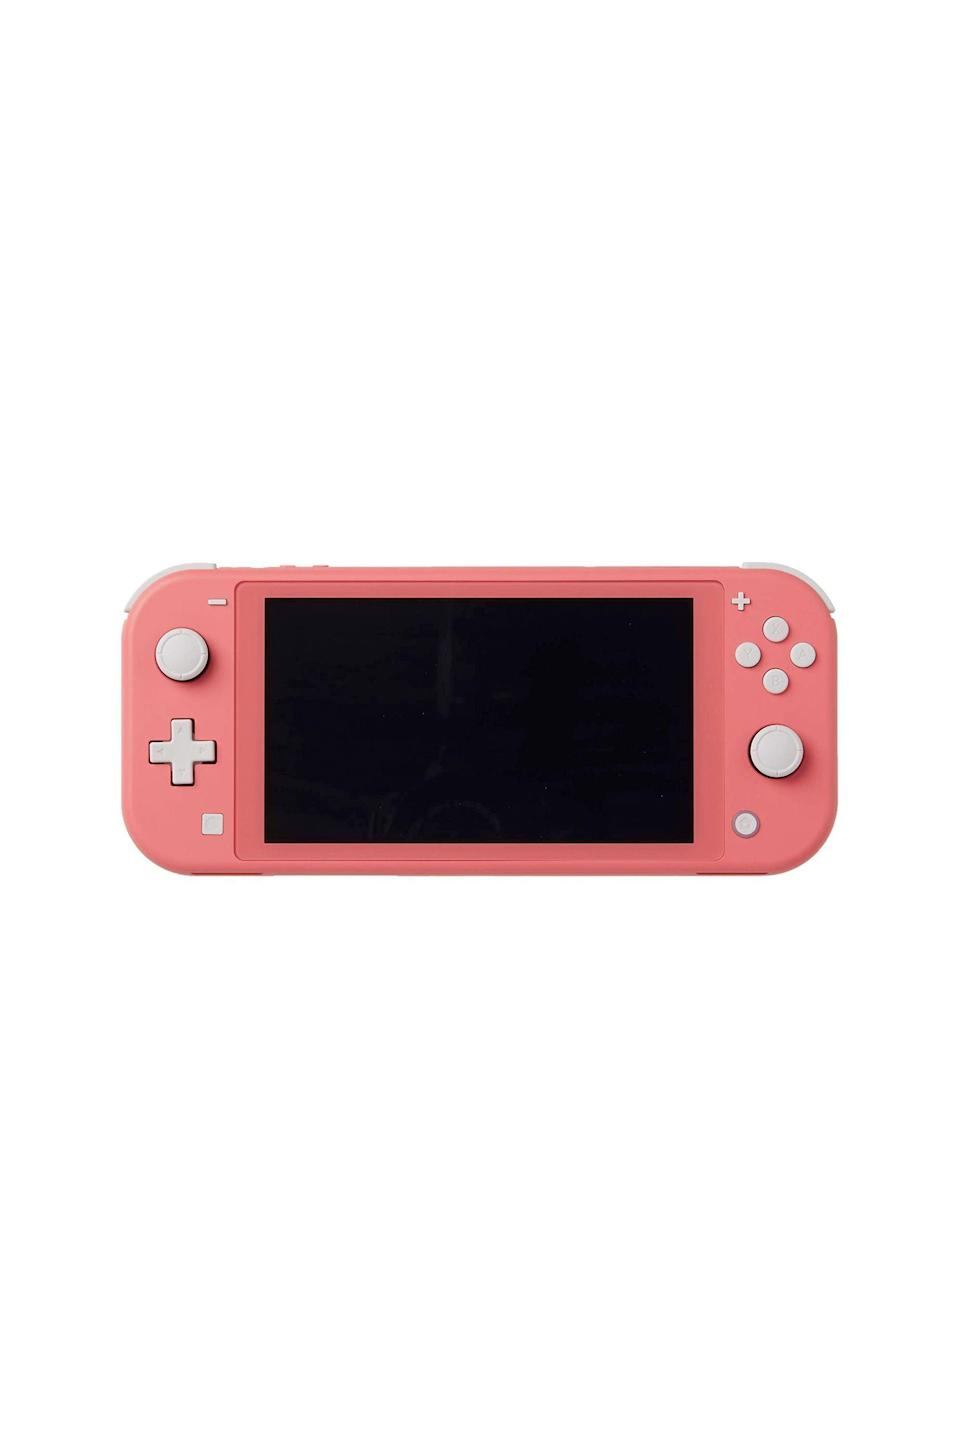 "<p><strong>Nintendo</strong></p><p>amazon.com</p><p><strong>$199.00</strong></p><p><a href=""https://www.amazon.com/dp/B084Y3VVNG?tag=syn-yahoo-20&ascsubtag=%5Bartid%7C10049.g.36069868%5Bsrc%7Cyahoo-us"" rel=""nofollow noopener"" target=""_blank"" data-ylk=""slk:Shop Now"" class=""link rapid-noclick-resp"">Shop Now</a></p><p>I truly don't know what I would've done without a Switch this quarantine. Animal Crossing: New Horizons was my therapy, my religion, my everything—and hell, it still is. The Switch Lite is perfect for solo players who need a fun distraction when refreshing the IG feed just isn't cutting it anymore. </p>"